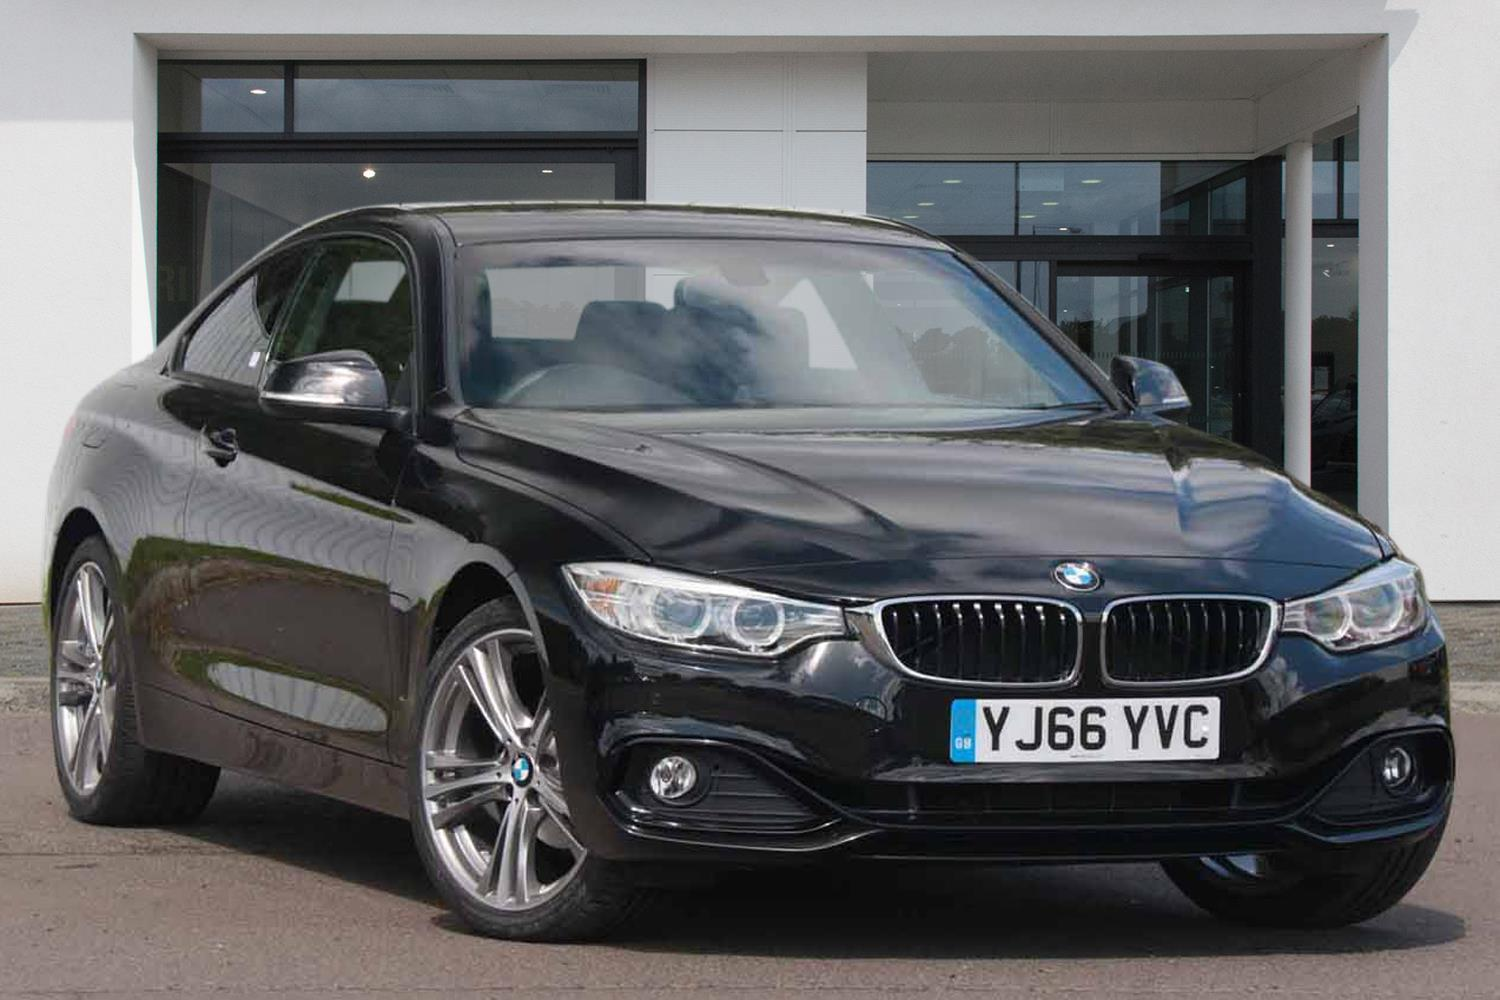 BMW 4 Series Coupé YJ66YVC - Image 7